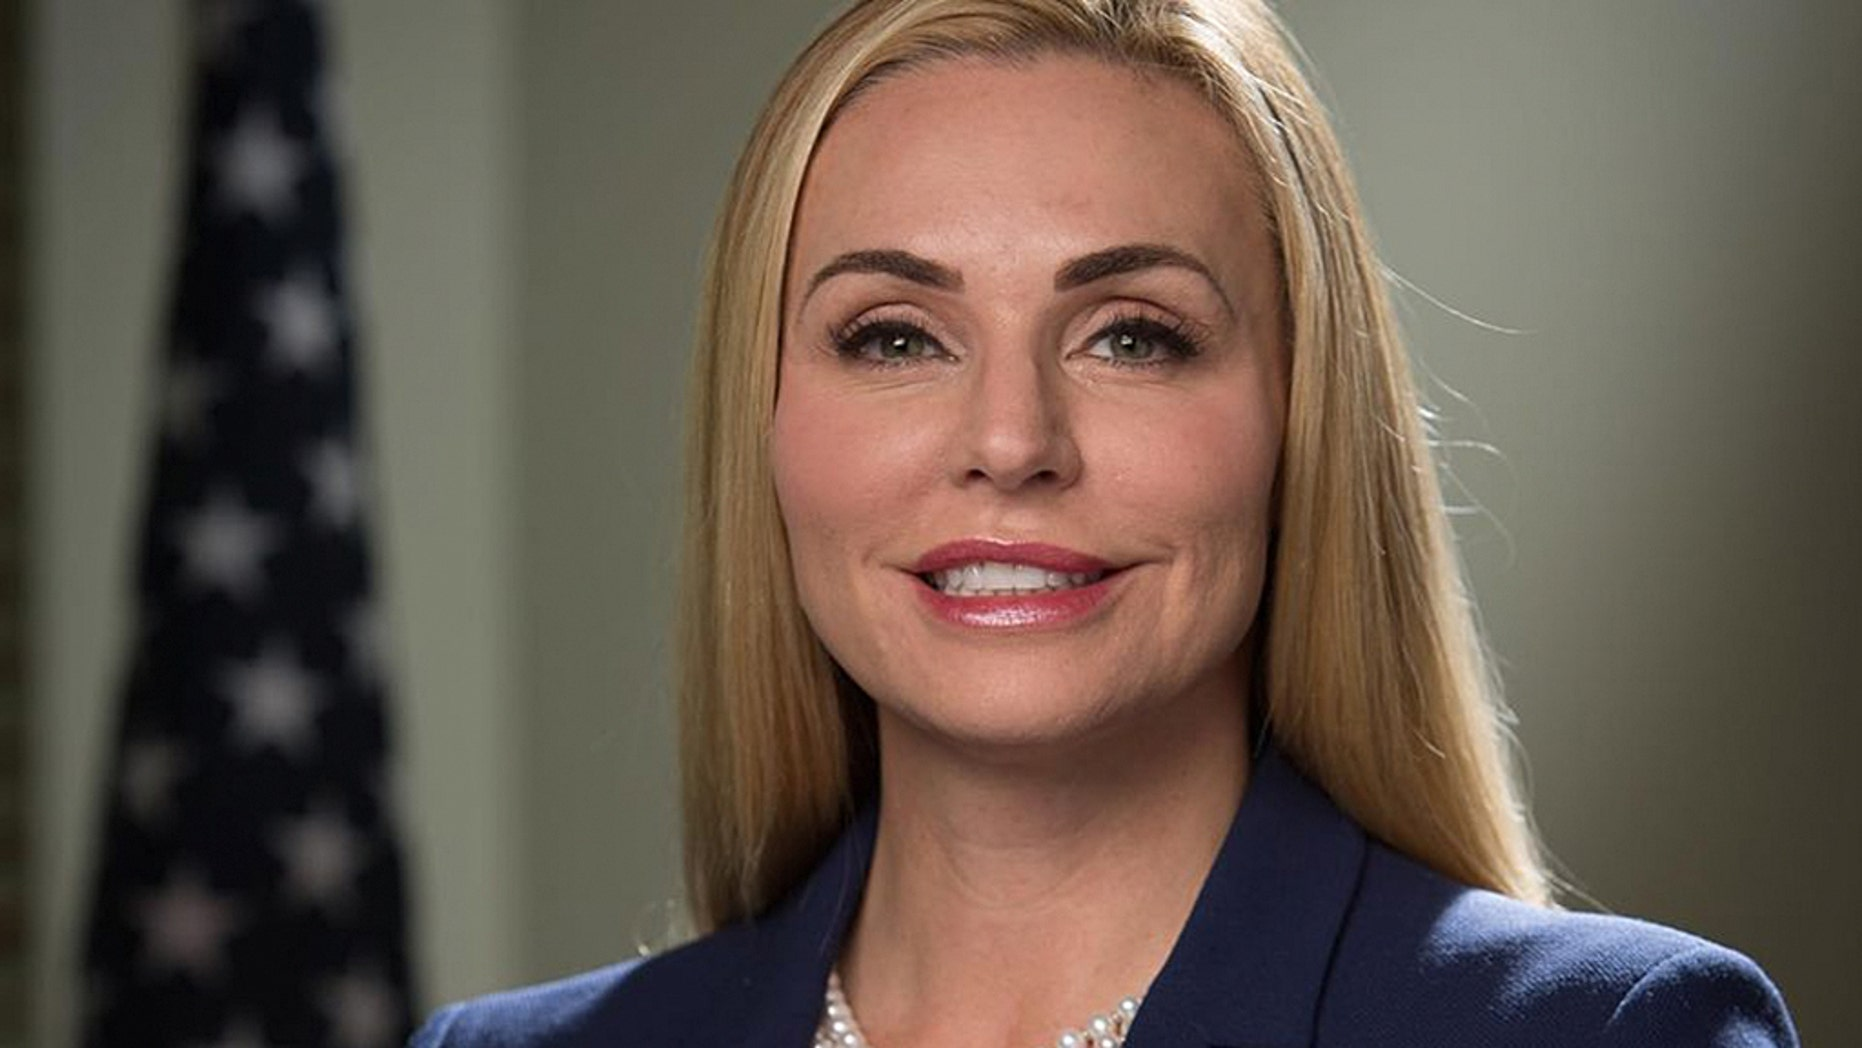 Melissa Howard, candidate for a Florida state House seat, has decided to withdraw from the election after admitting to lying about her college credentials.